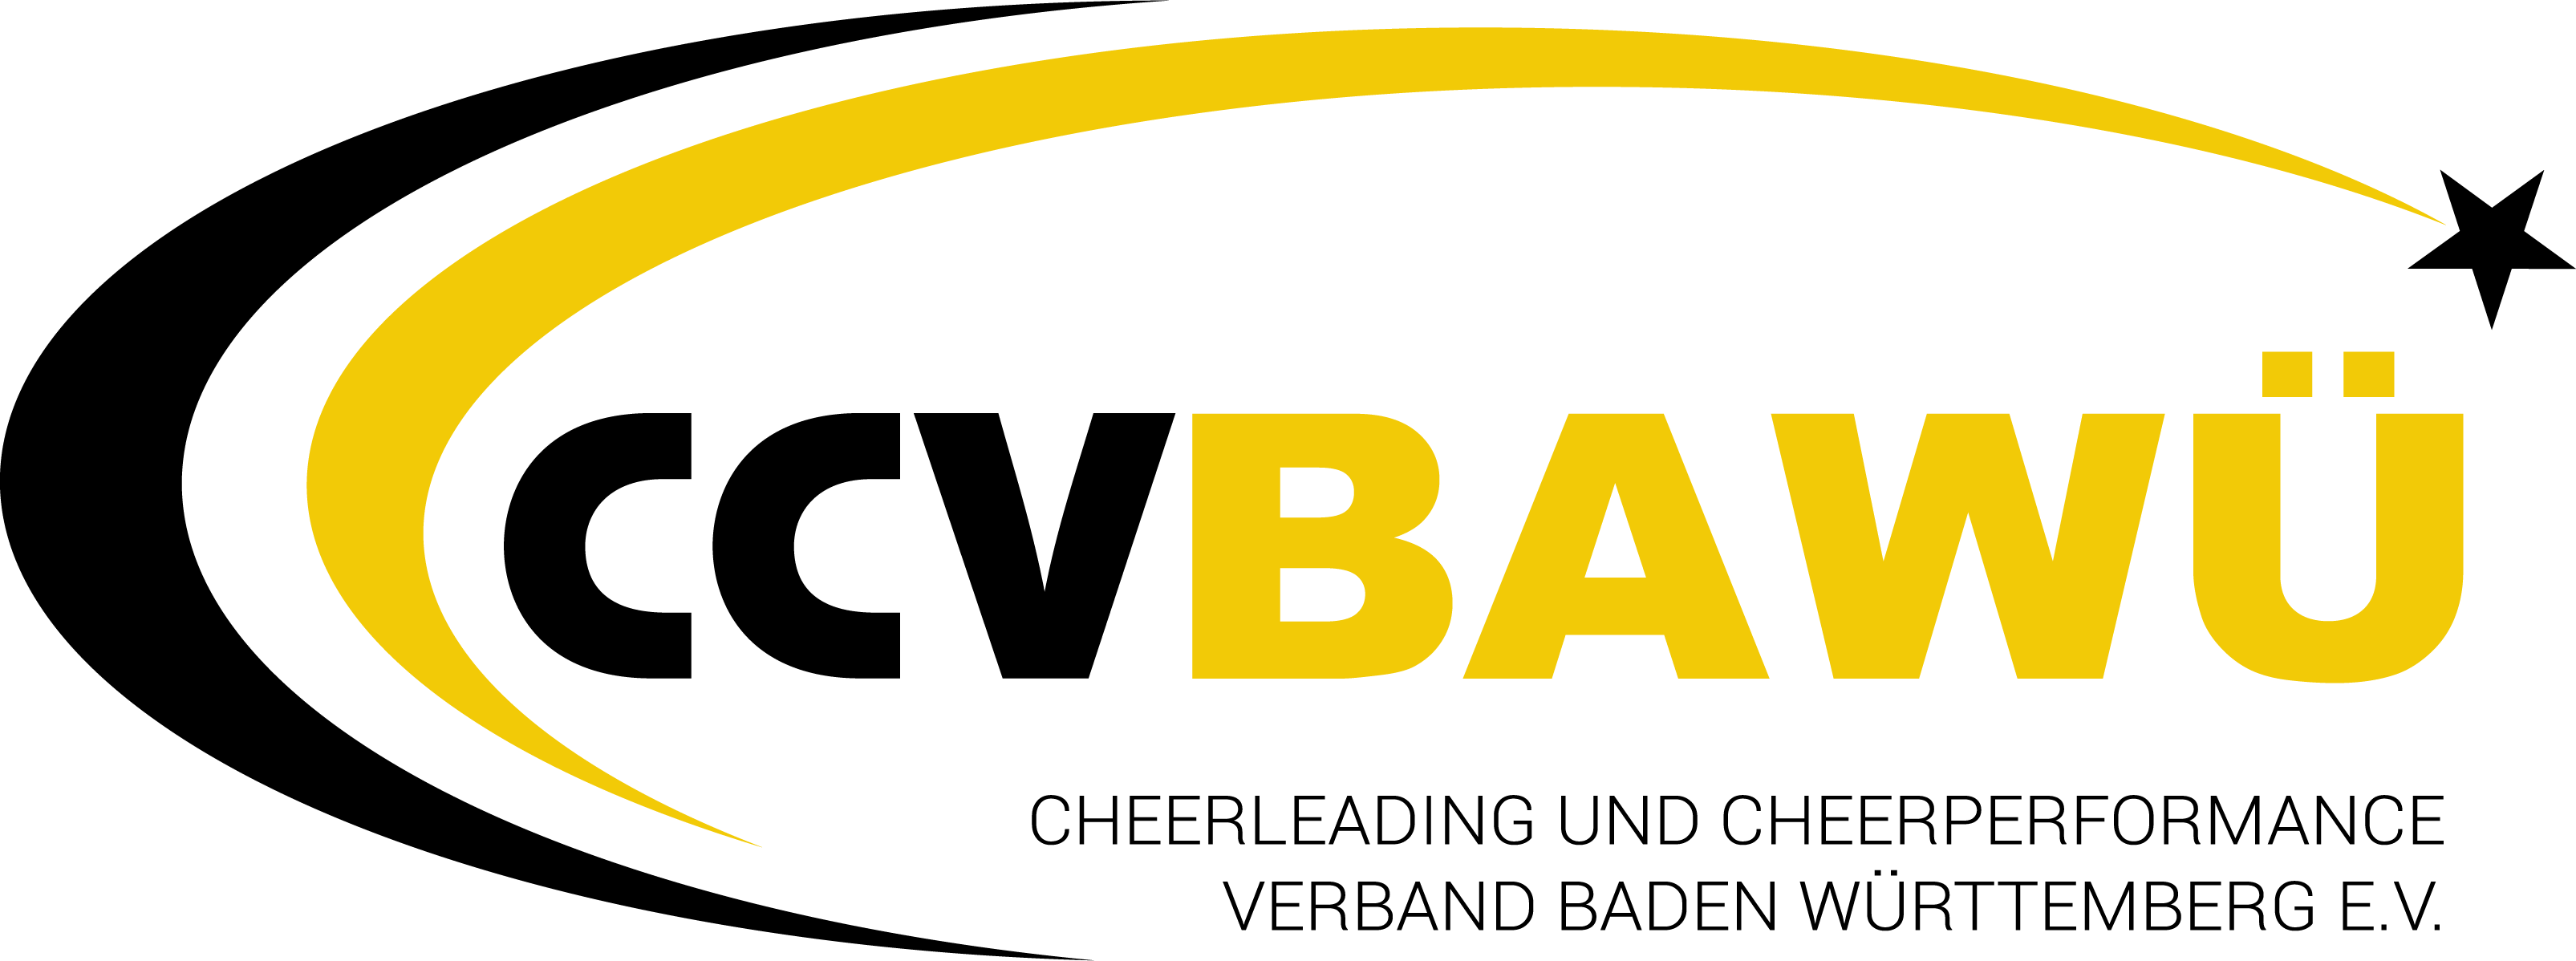 Cheerleading und Cheerdance Verband Baden-Württemberg E.V.